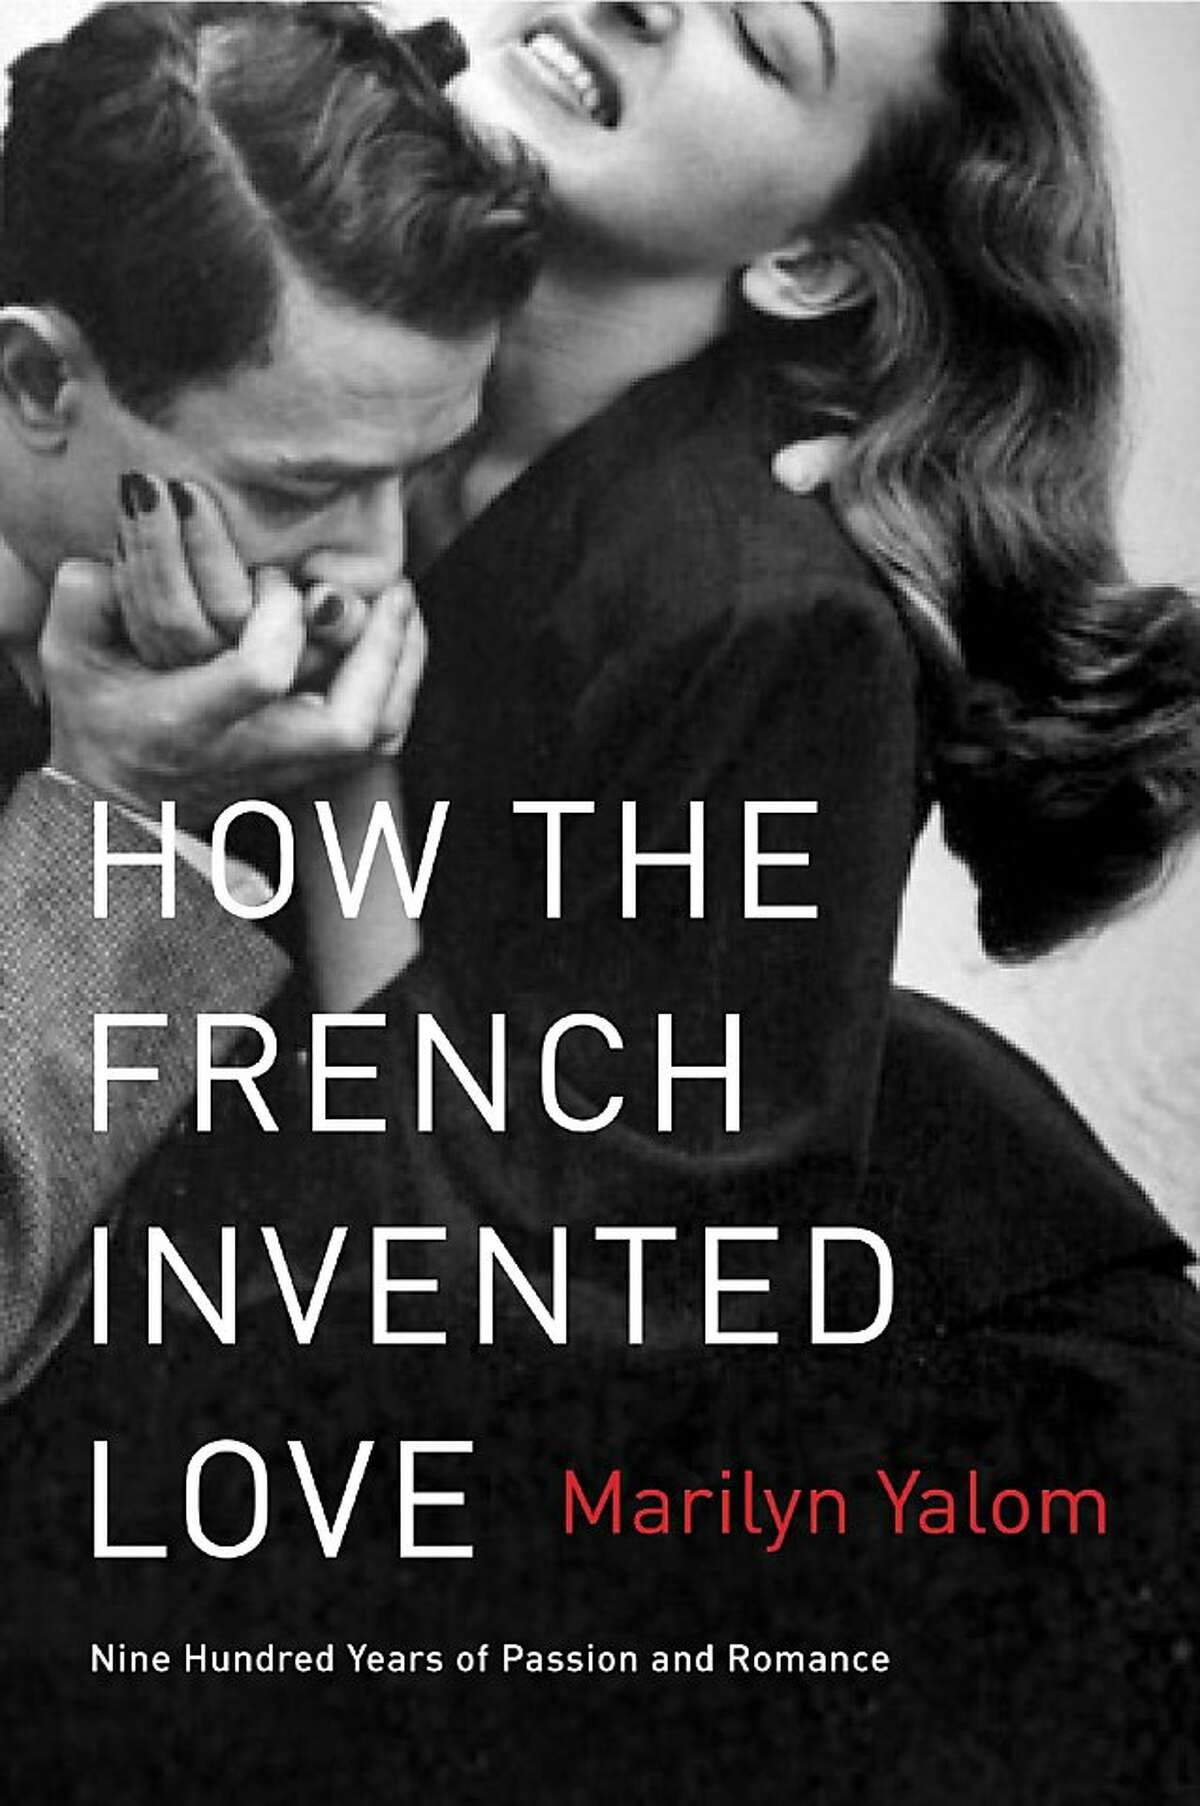 How the French Invented Love, by Marilyn Yalom